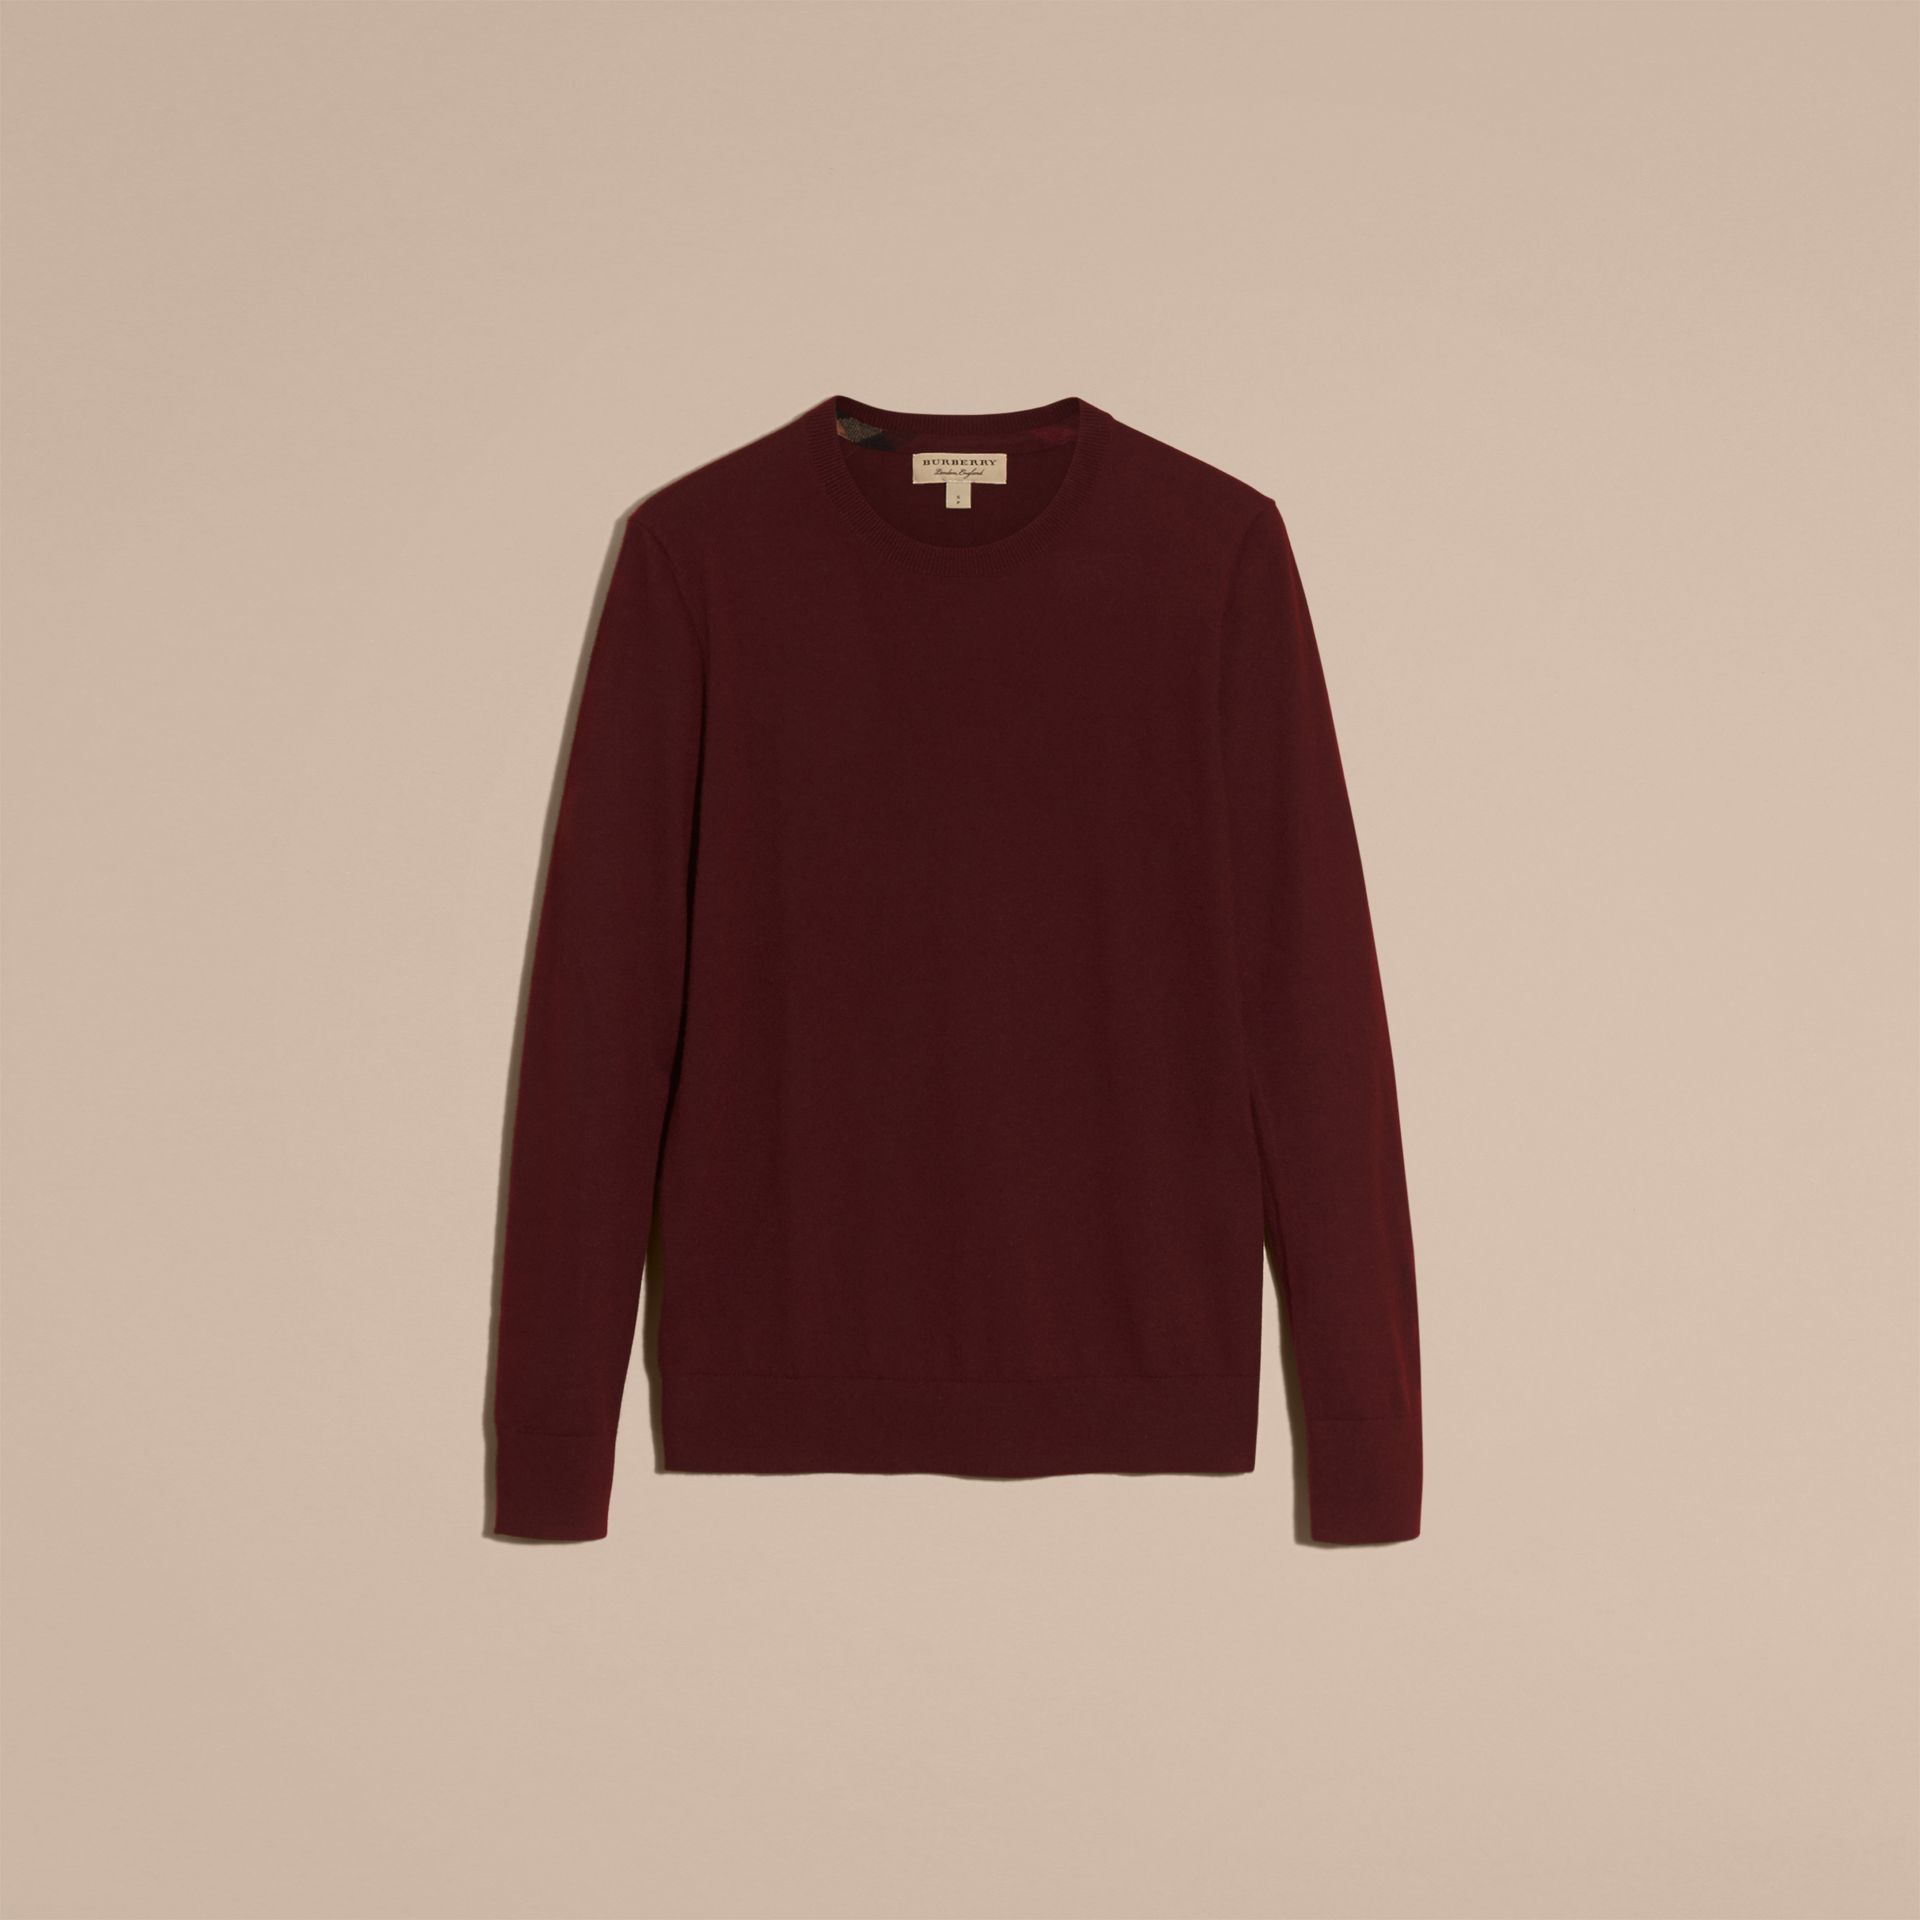 Lightweight Crew Neck Cashmere Sweater with Check Trim in Deep Claret - Men | Burberry - gallery image 4